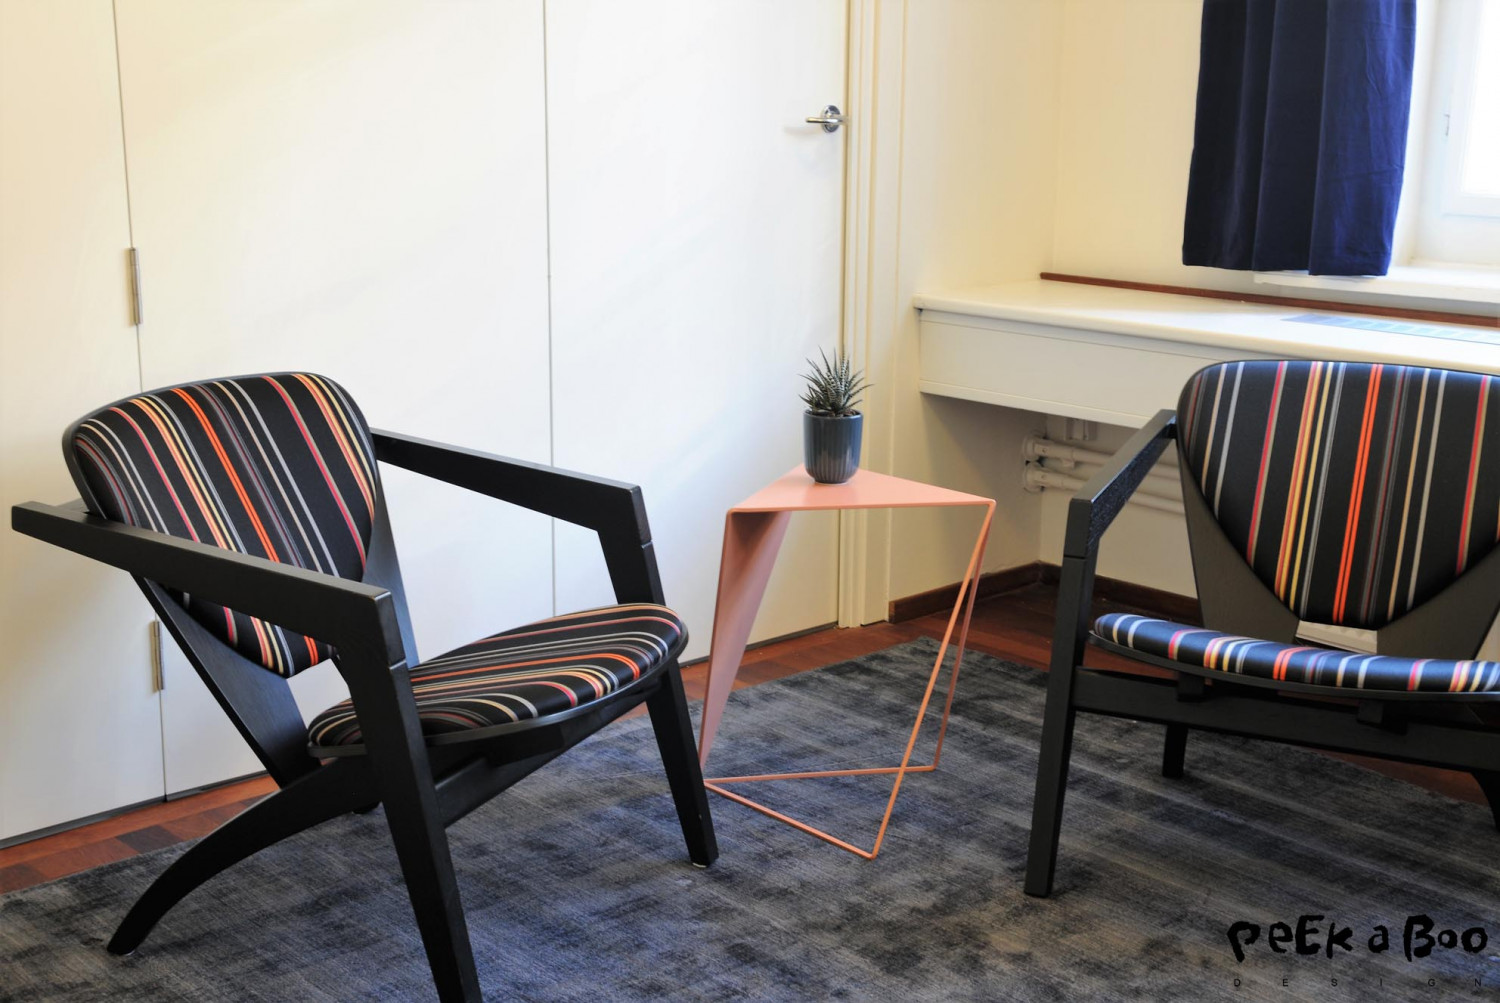 We took the chairs from the hallway and re-used for the small meetingroom. And added the nude sidetable from Munk Collective. And the new carpet made of upcycled yarn from Sofakompaniget.